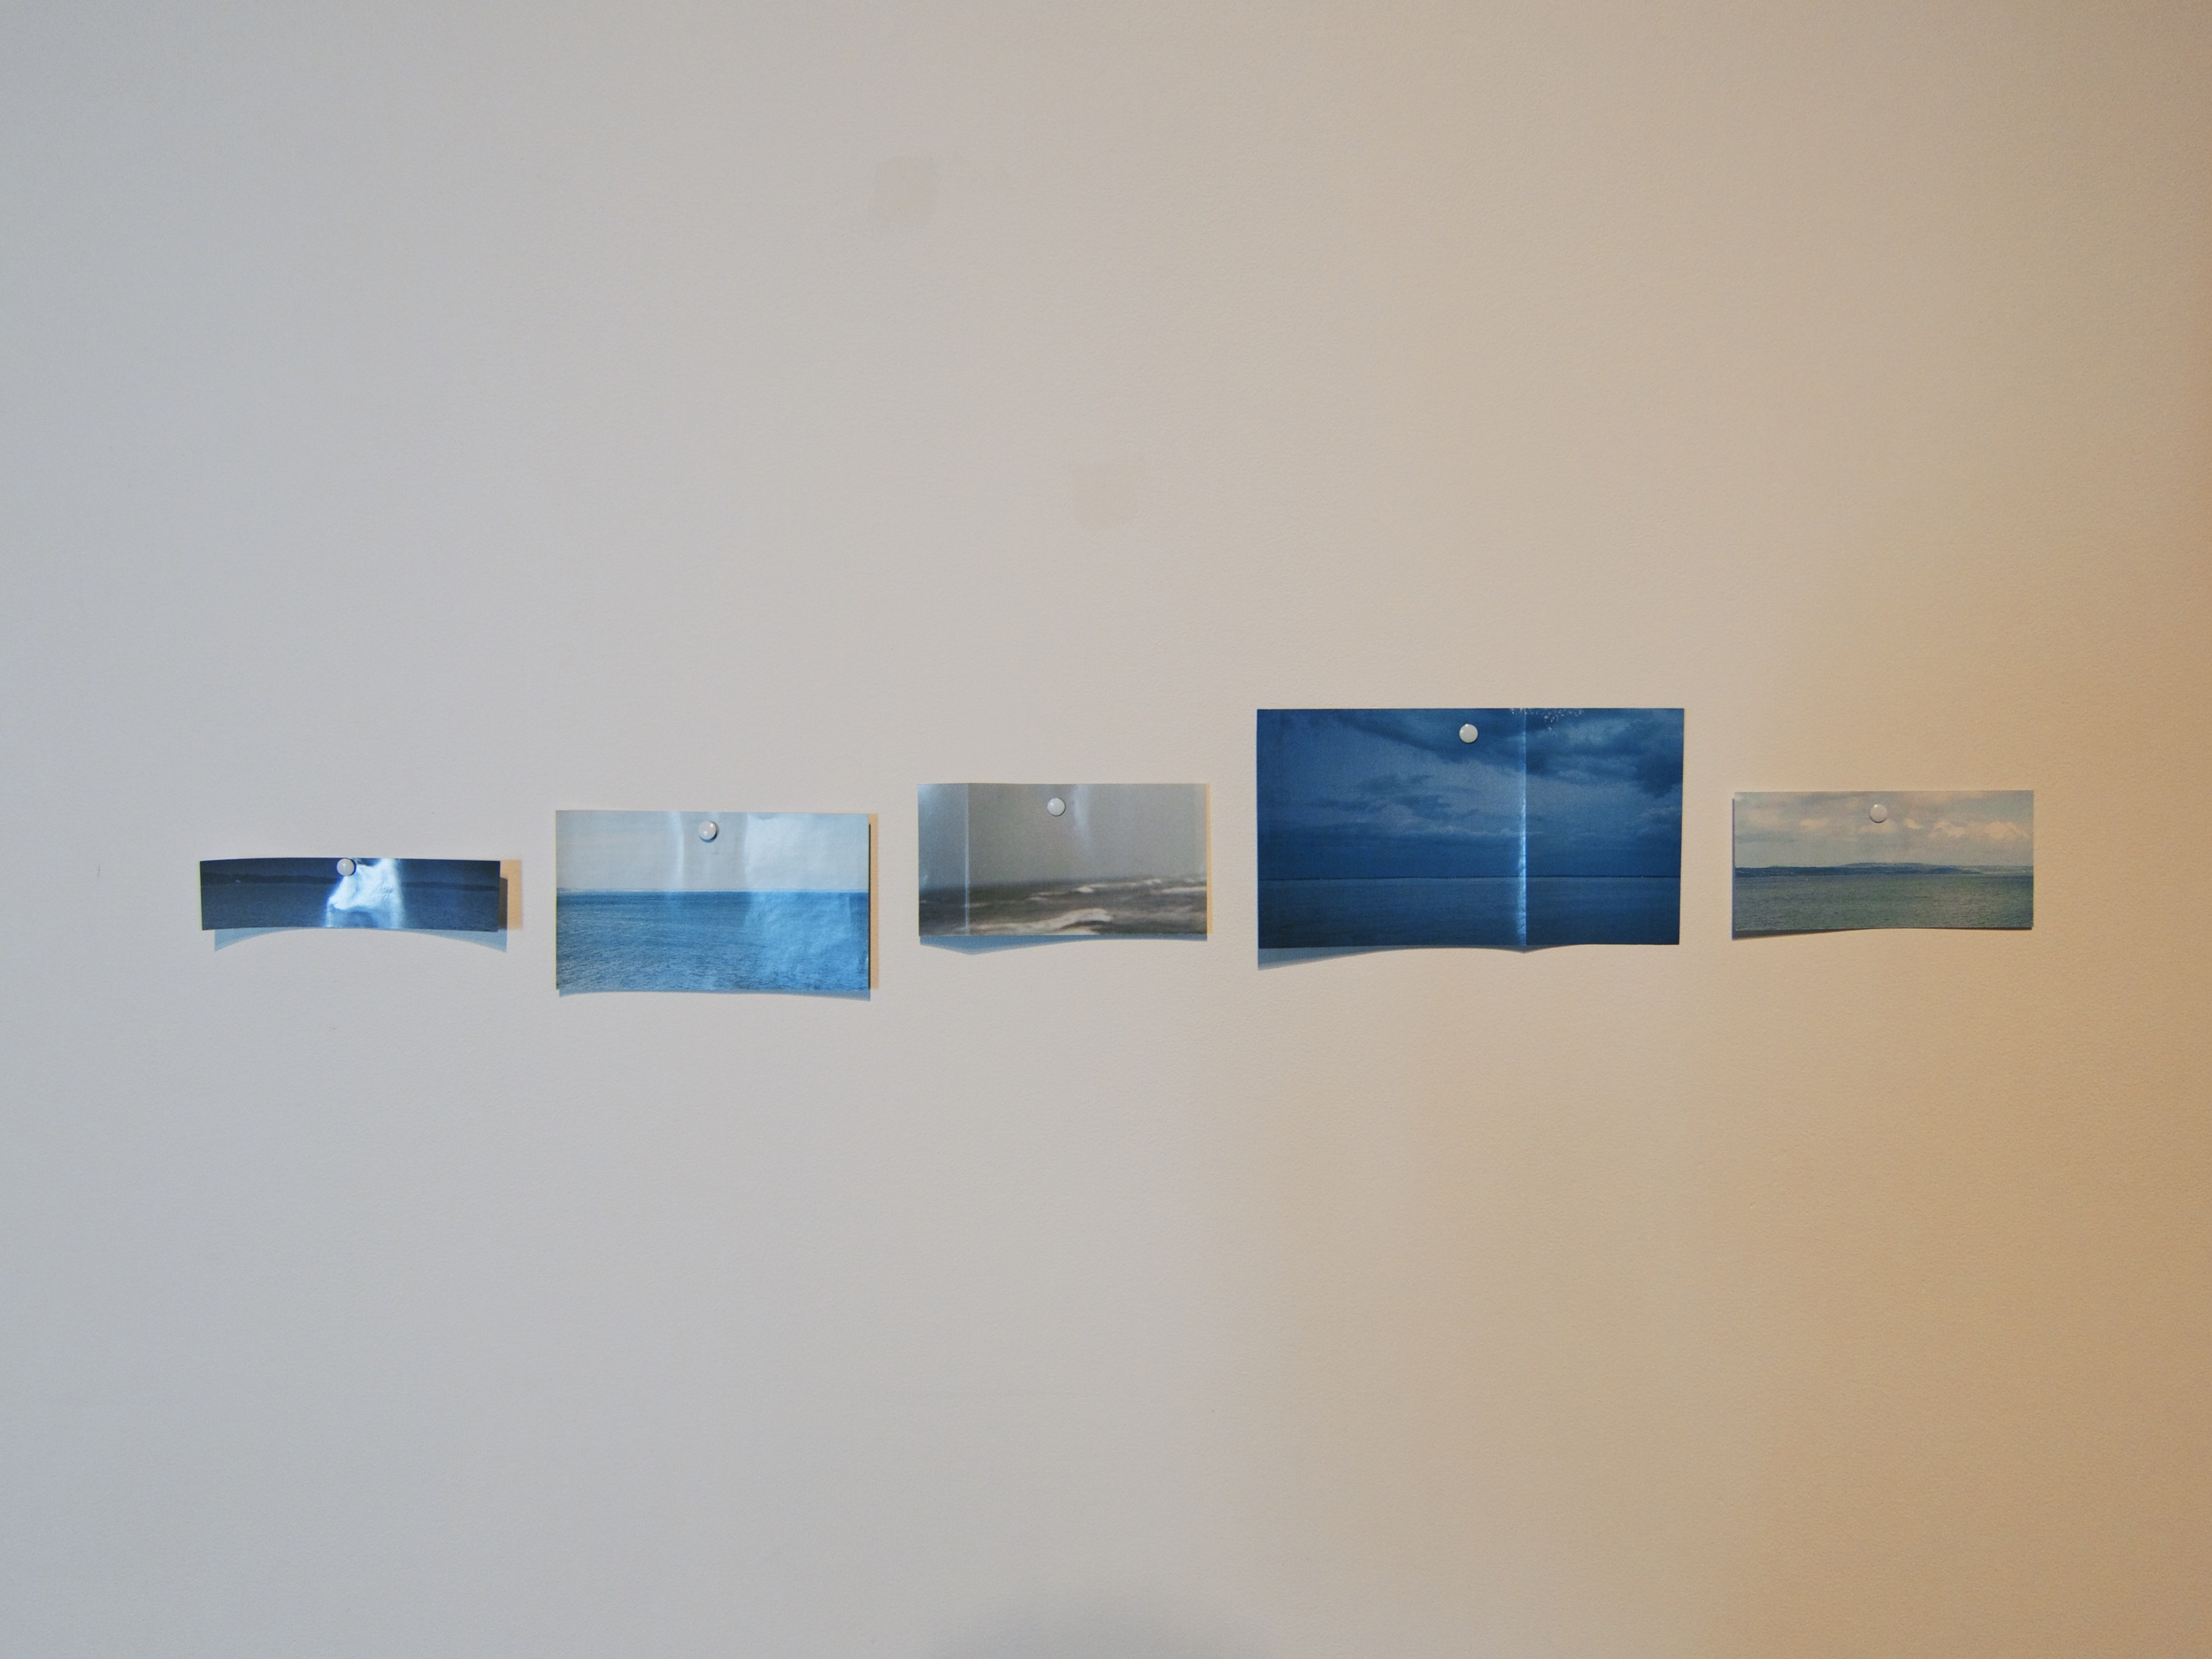 Pinned cut out National Geographic images of horizons, 20x6 inches, 2014.